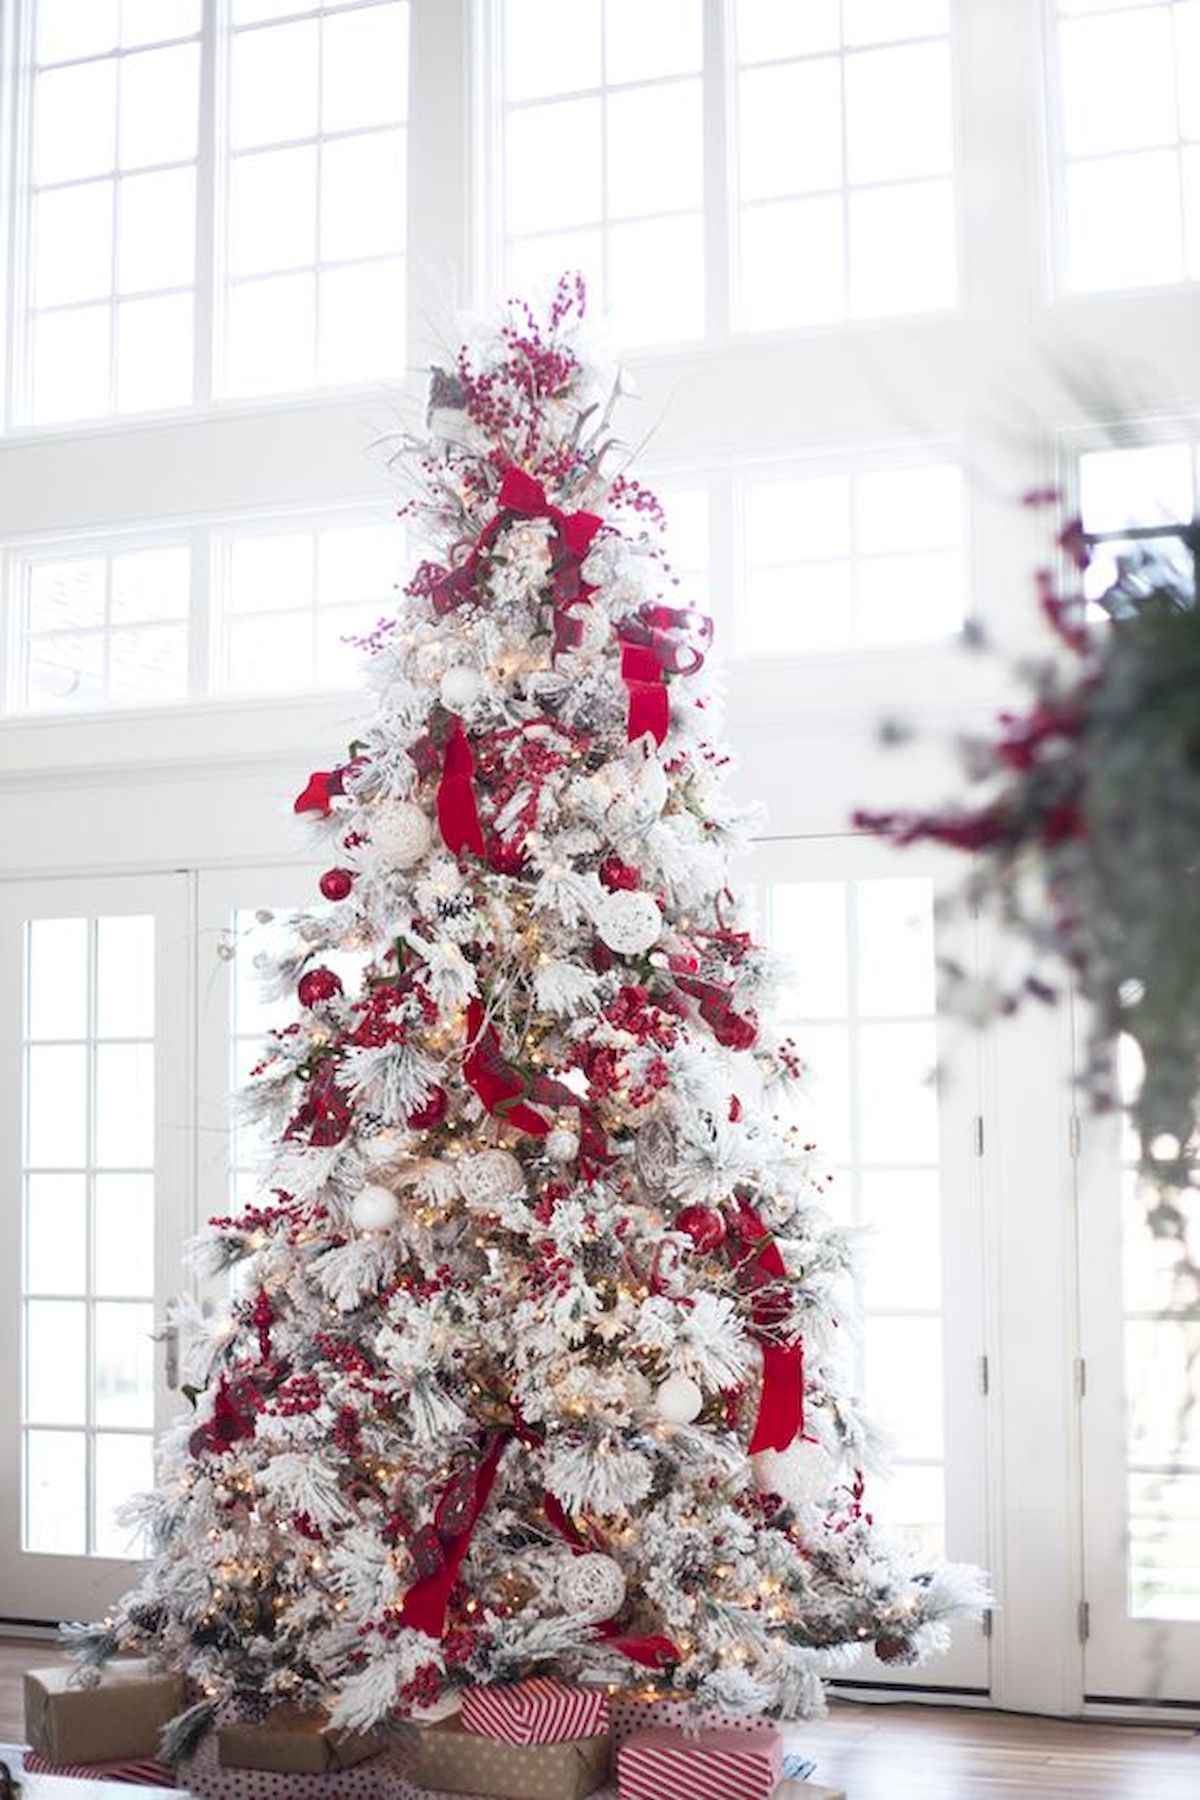 60 awesome christmas tree decorations ideas (13)